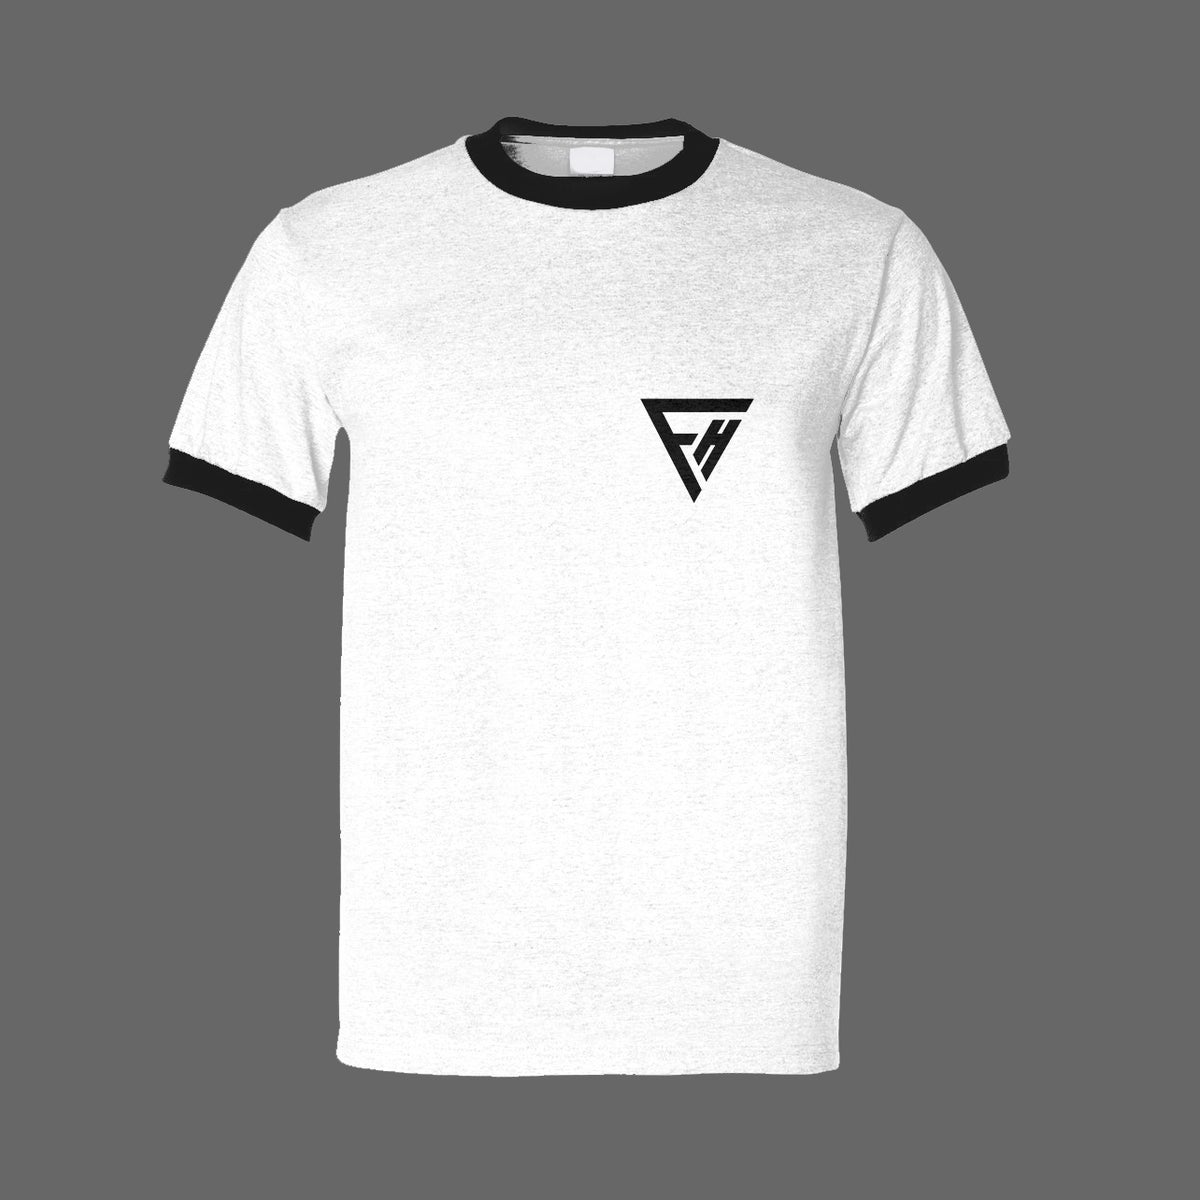 Image of FALSE HEADS white logo tee